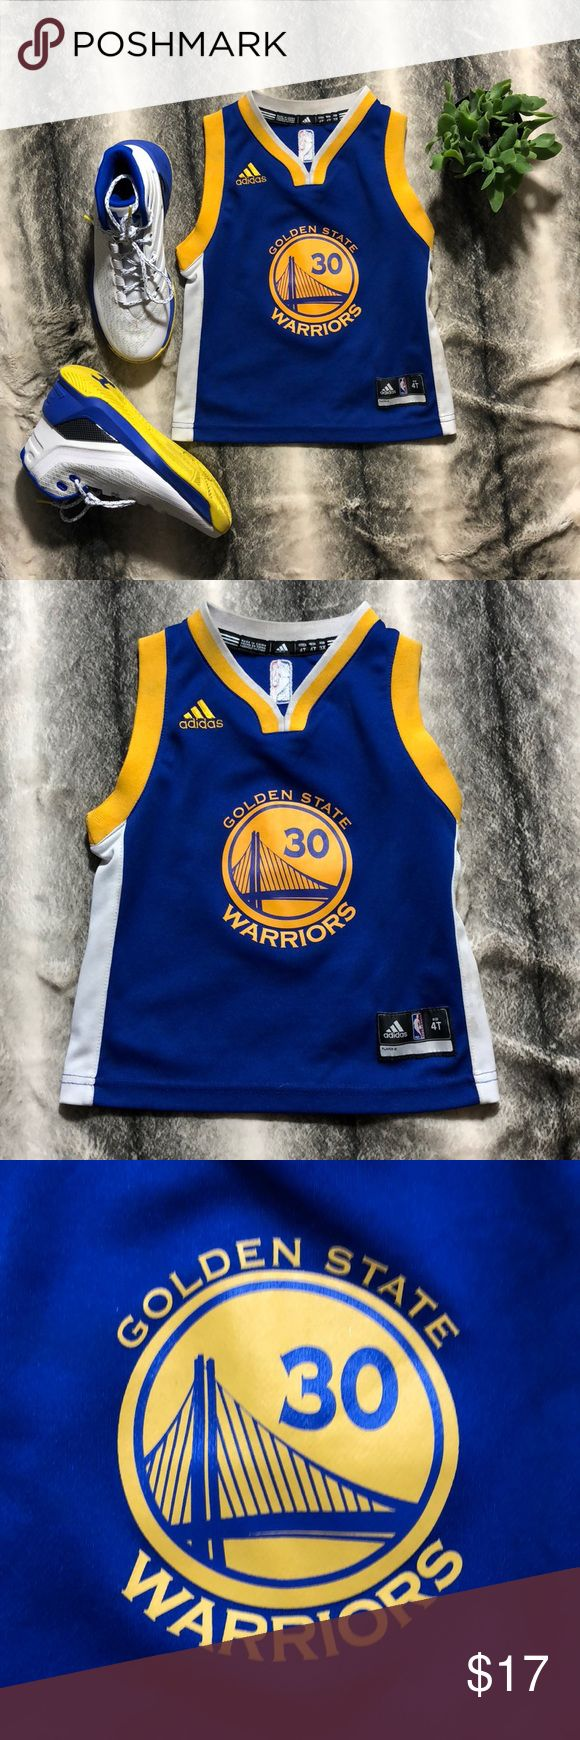 Golden State Warriors Jersey This is a fair condition Golden State Warriors Jersey for a 4T. The Jersey has some dirt stains on the white side and necks with a mild stain on the back bottom (as shown in the photos) i have not dry cleaner the Jersey but I am sure you can find a way to make this Jersey pearly white. Make me an offer. adidas Shirts & Tops